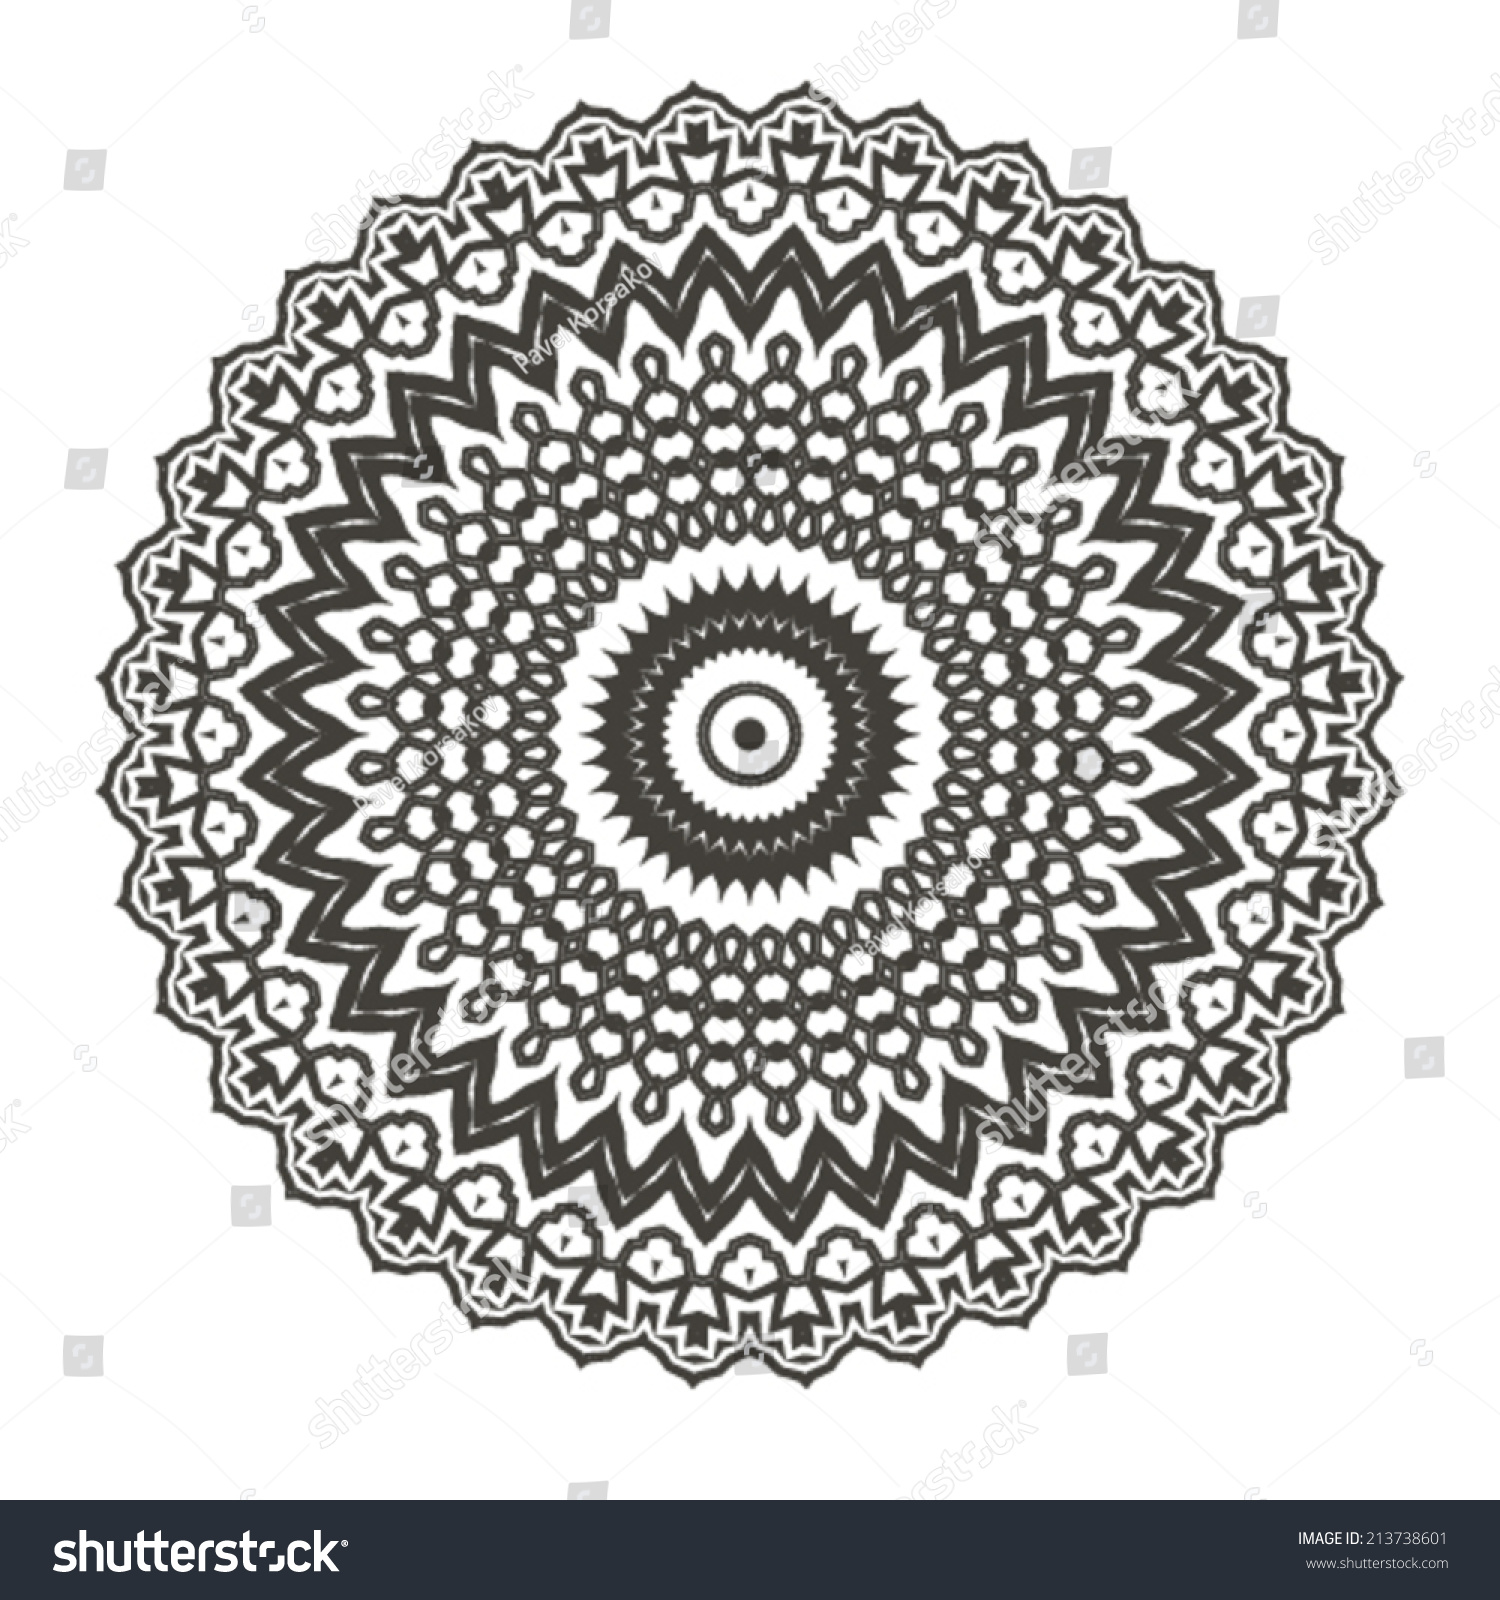 Top Wallpaper Marble Mandala - stock-vector-mandala-round-ornament-vintage-antique-ornament-background-vector-illustration-for-your-feminine-213738601  Pic_845994.jpg